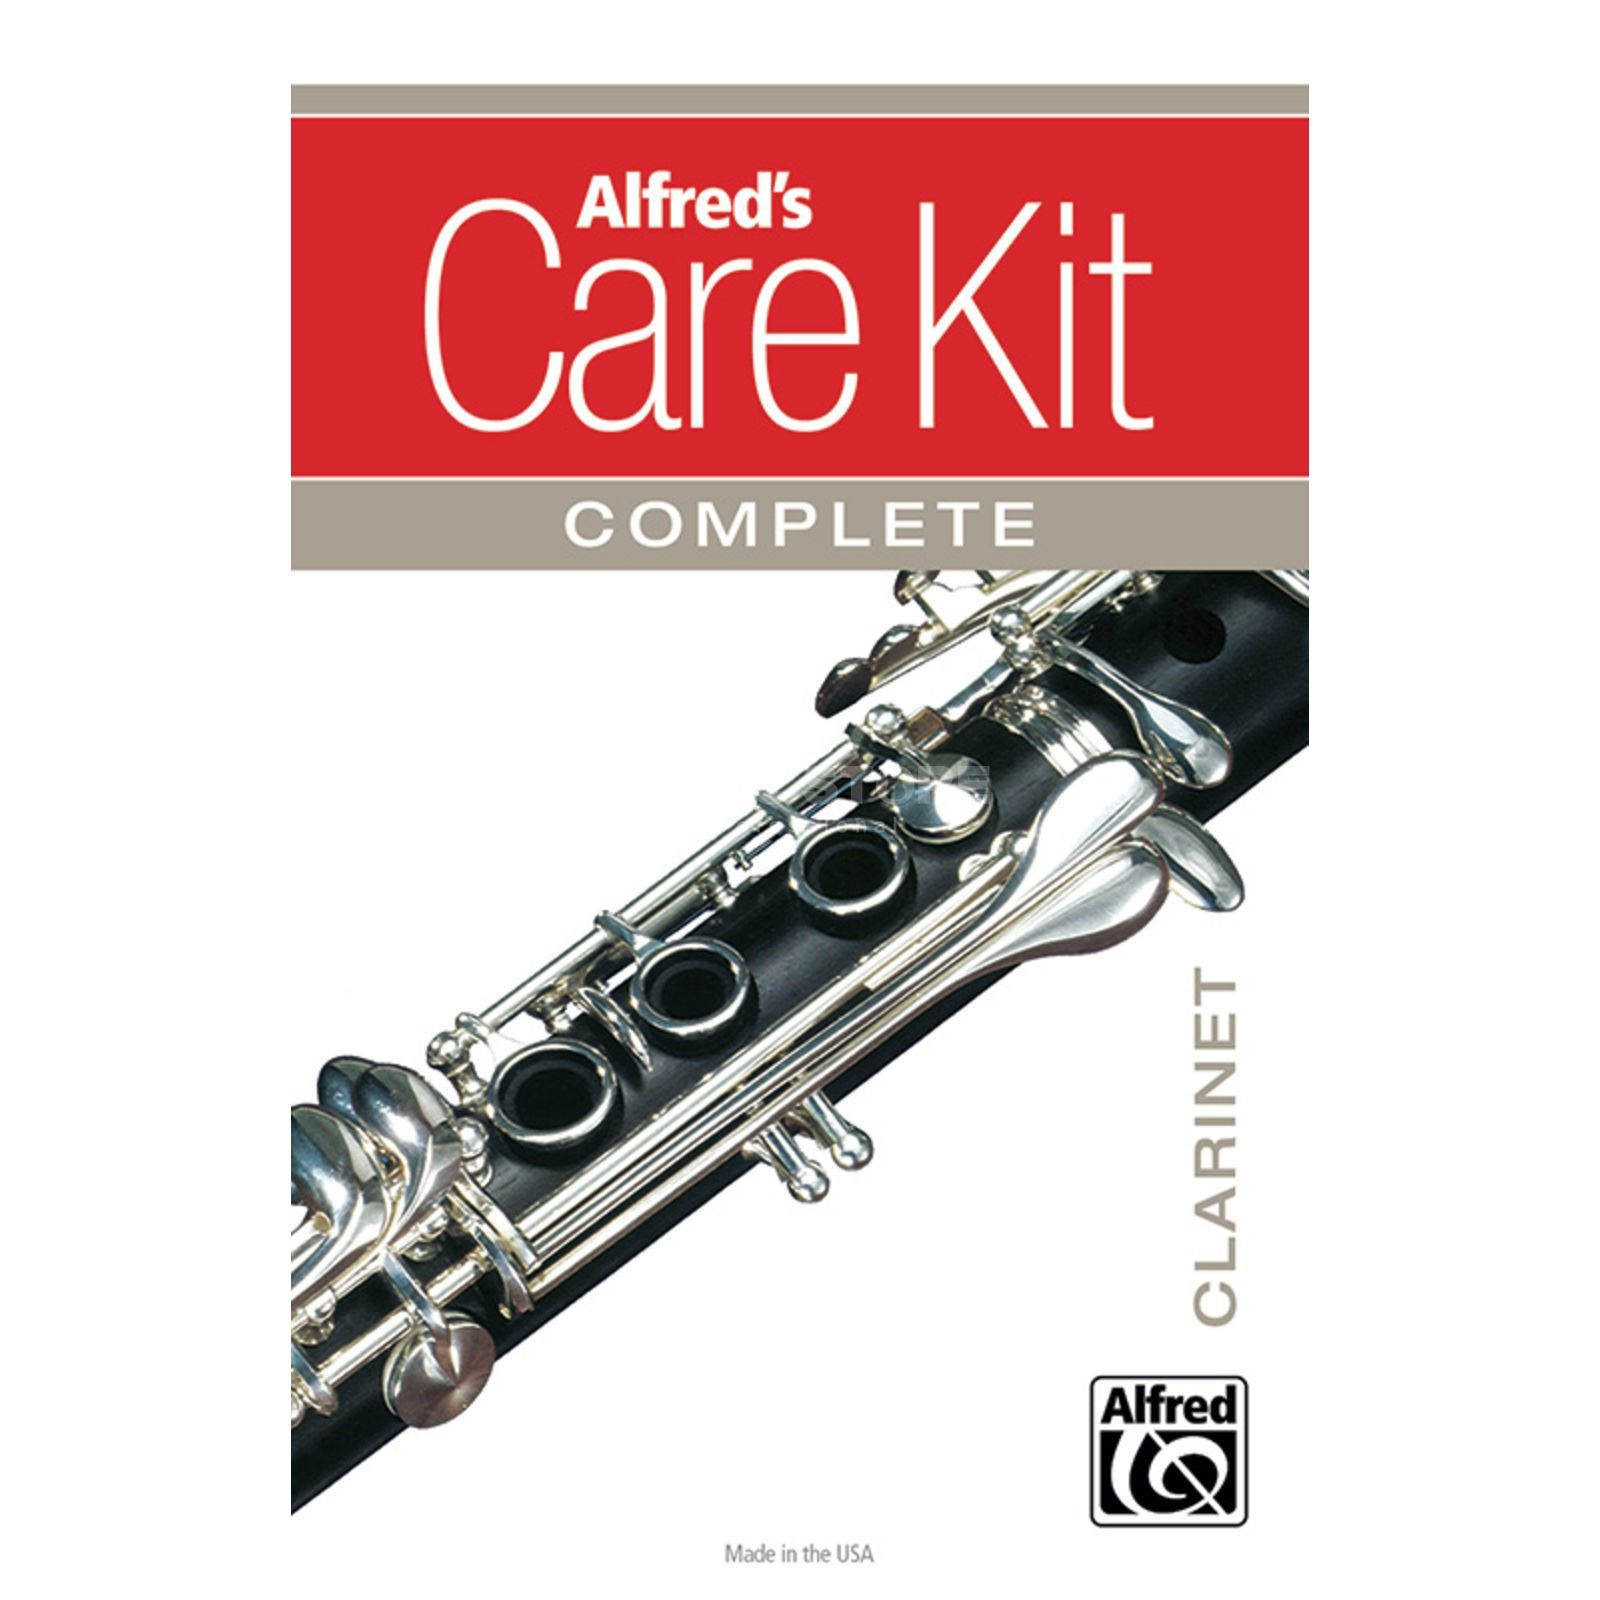 Alfred Music Care Kit Complete: Clarinet  Product Image